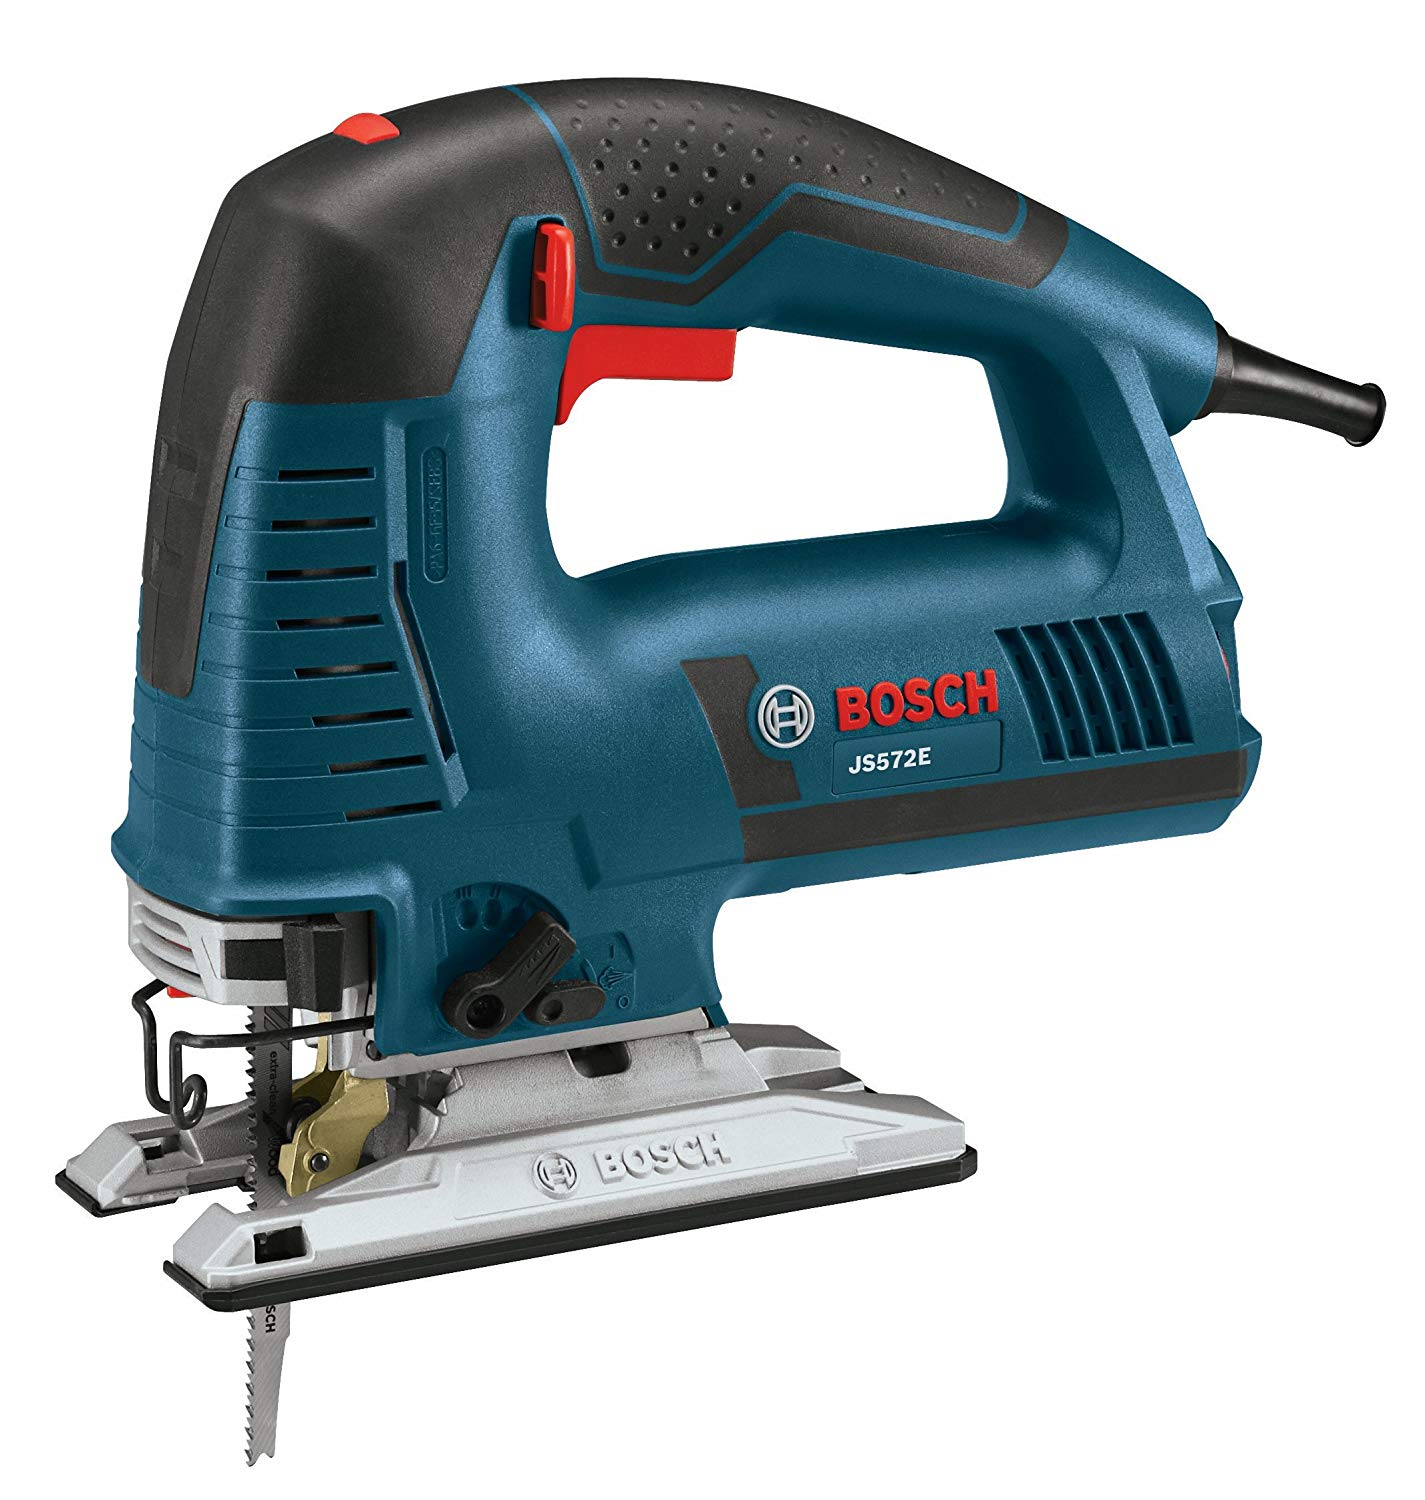 Bosch Power Tools Jigsaw Kit - JS572EK - 7.2 Amp Top-Handle Jig Saw Kit For Woodworkers, Kitchen, Bathroom Installers, Contractors